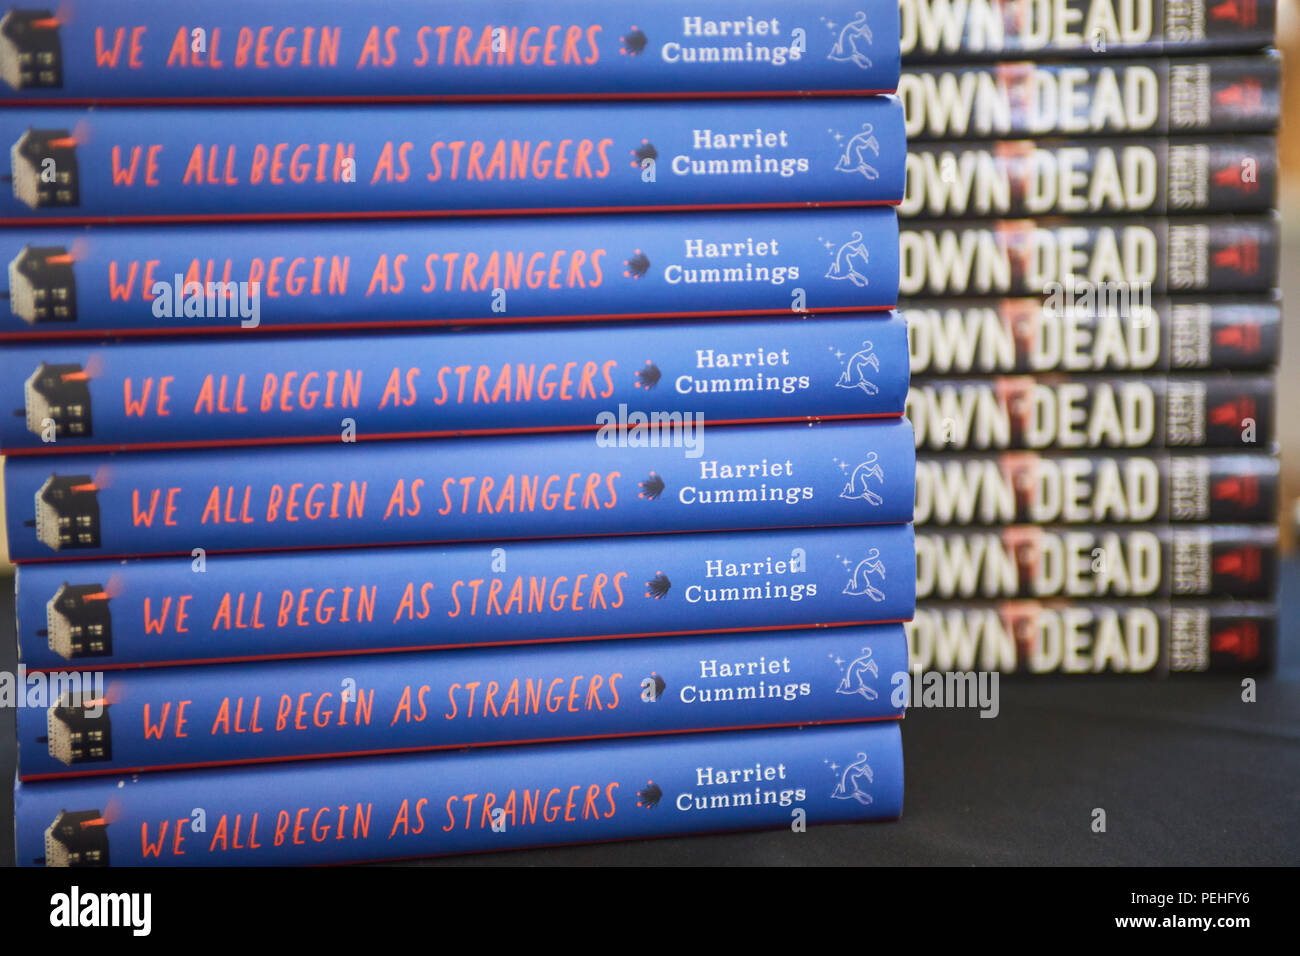 """A stack of books showing spines with the title """"We All Begin As Strangers"""" by Harriet Cummings - Stock Image"""